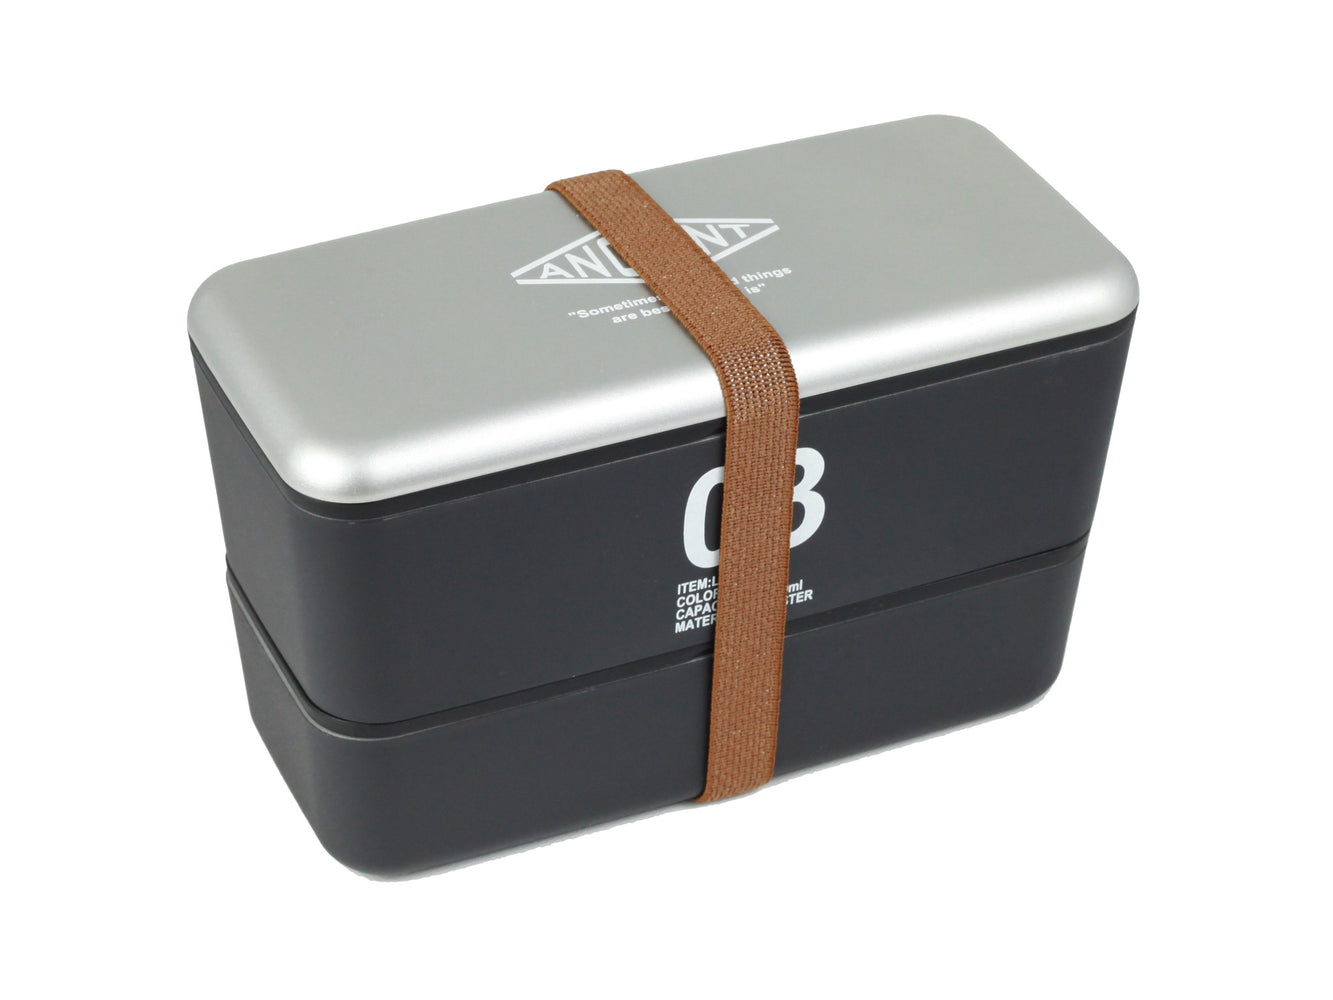 Ancient Bento Box | Black by Showa - Bento&con the Bento Boxes specialist from Kyoto